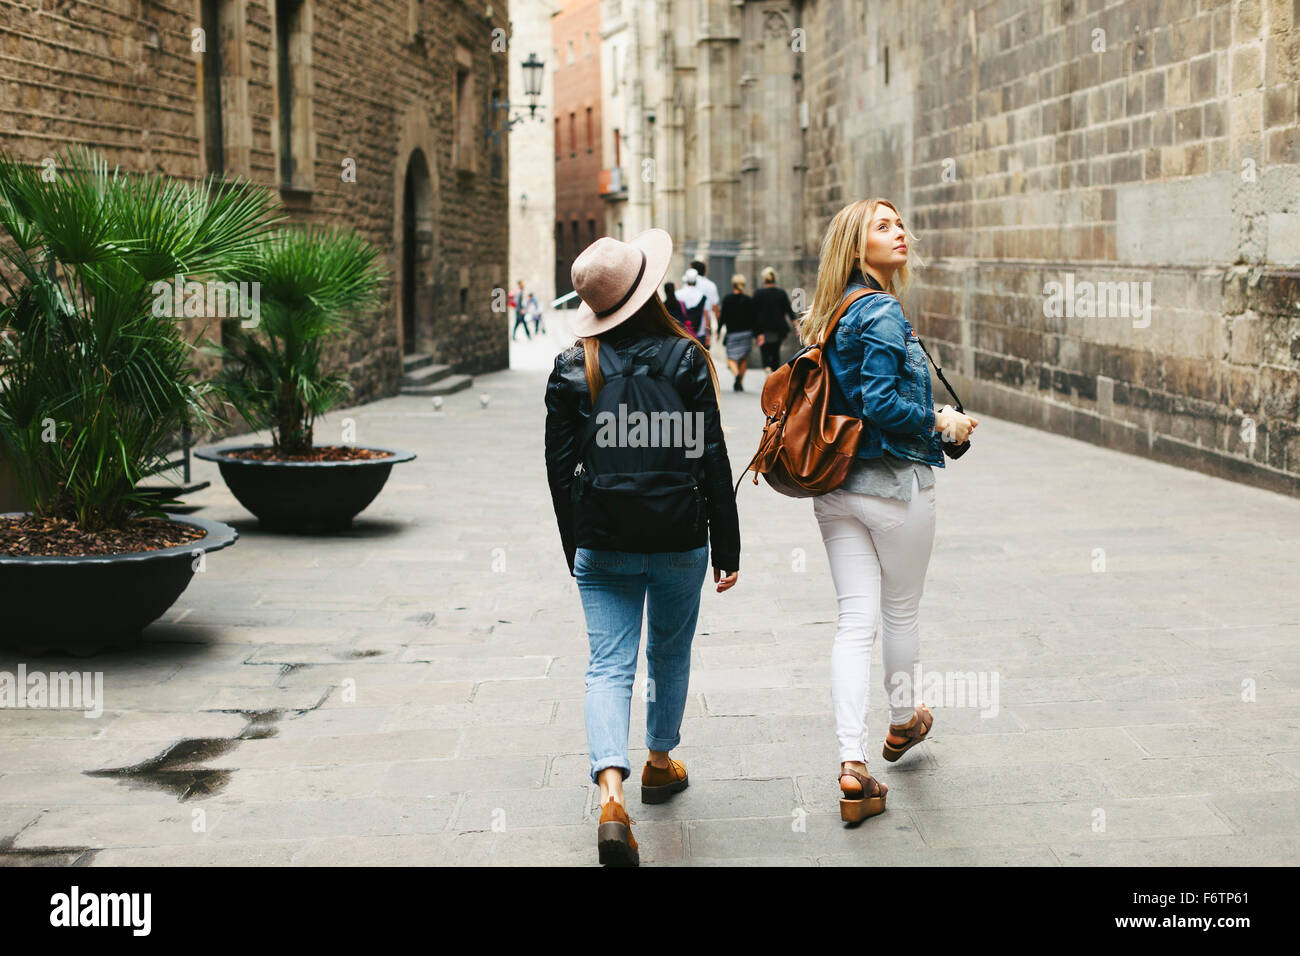 Spain, Barcelona, two young women walking in the city - Stock Image